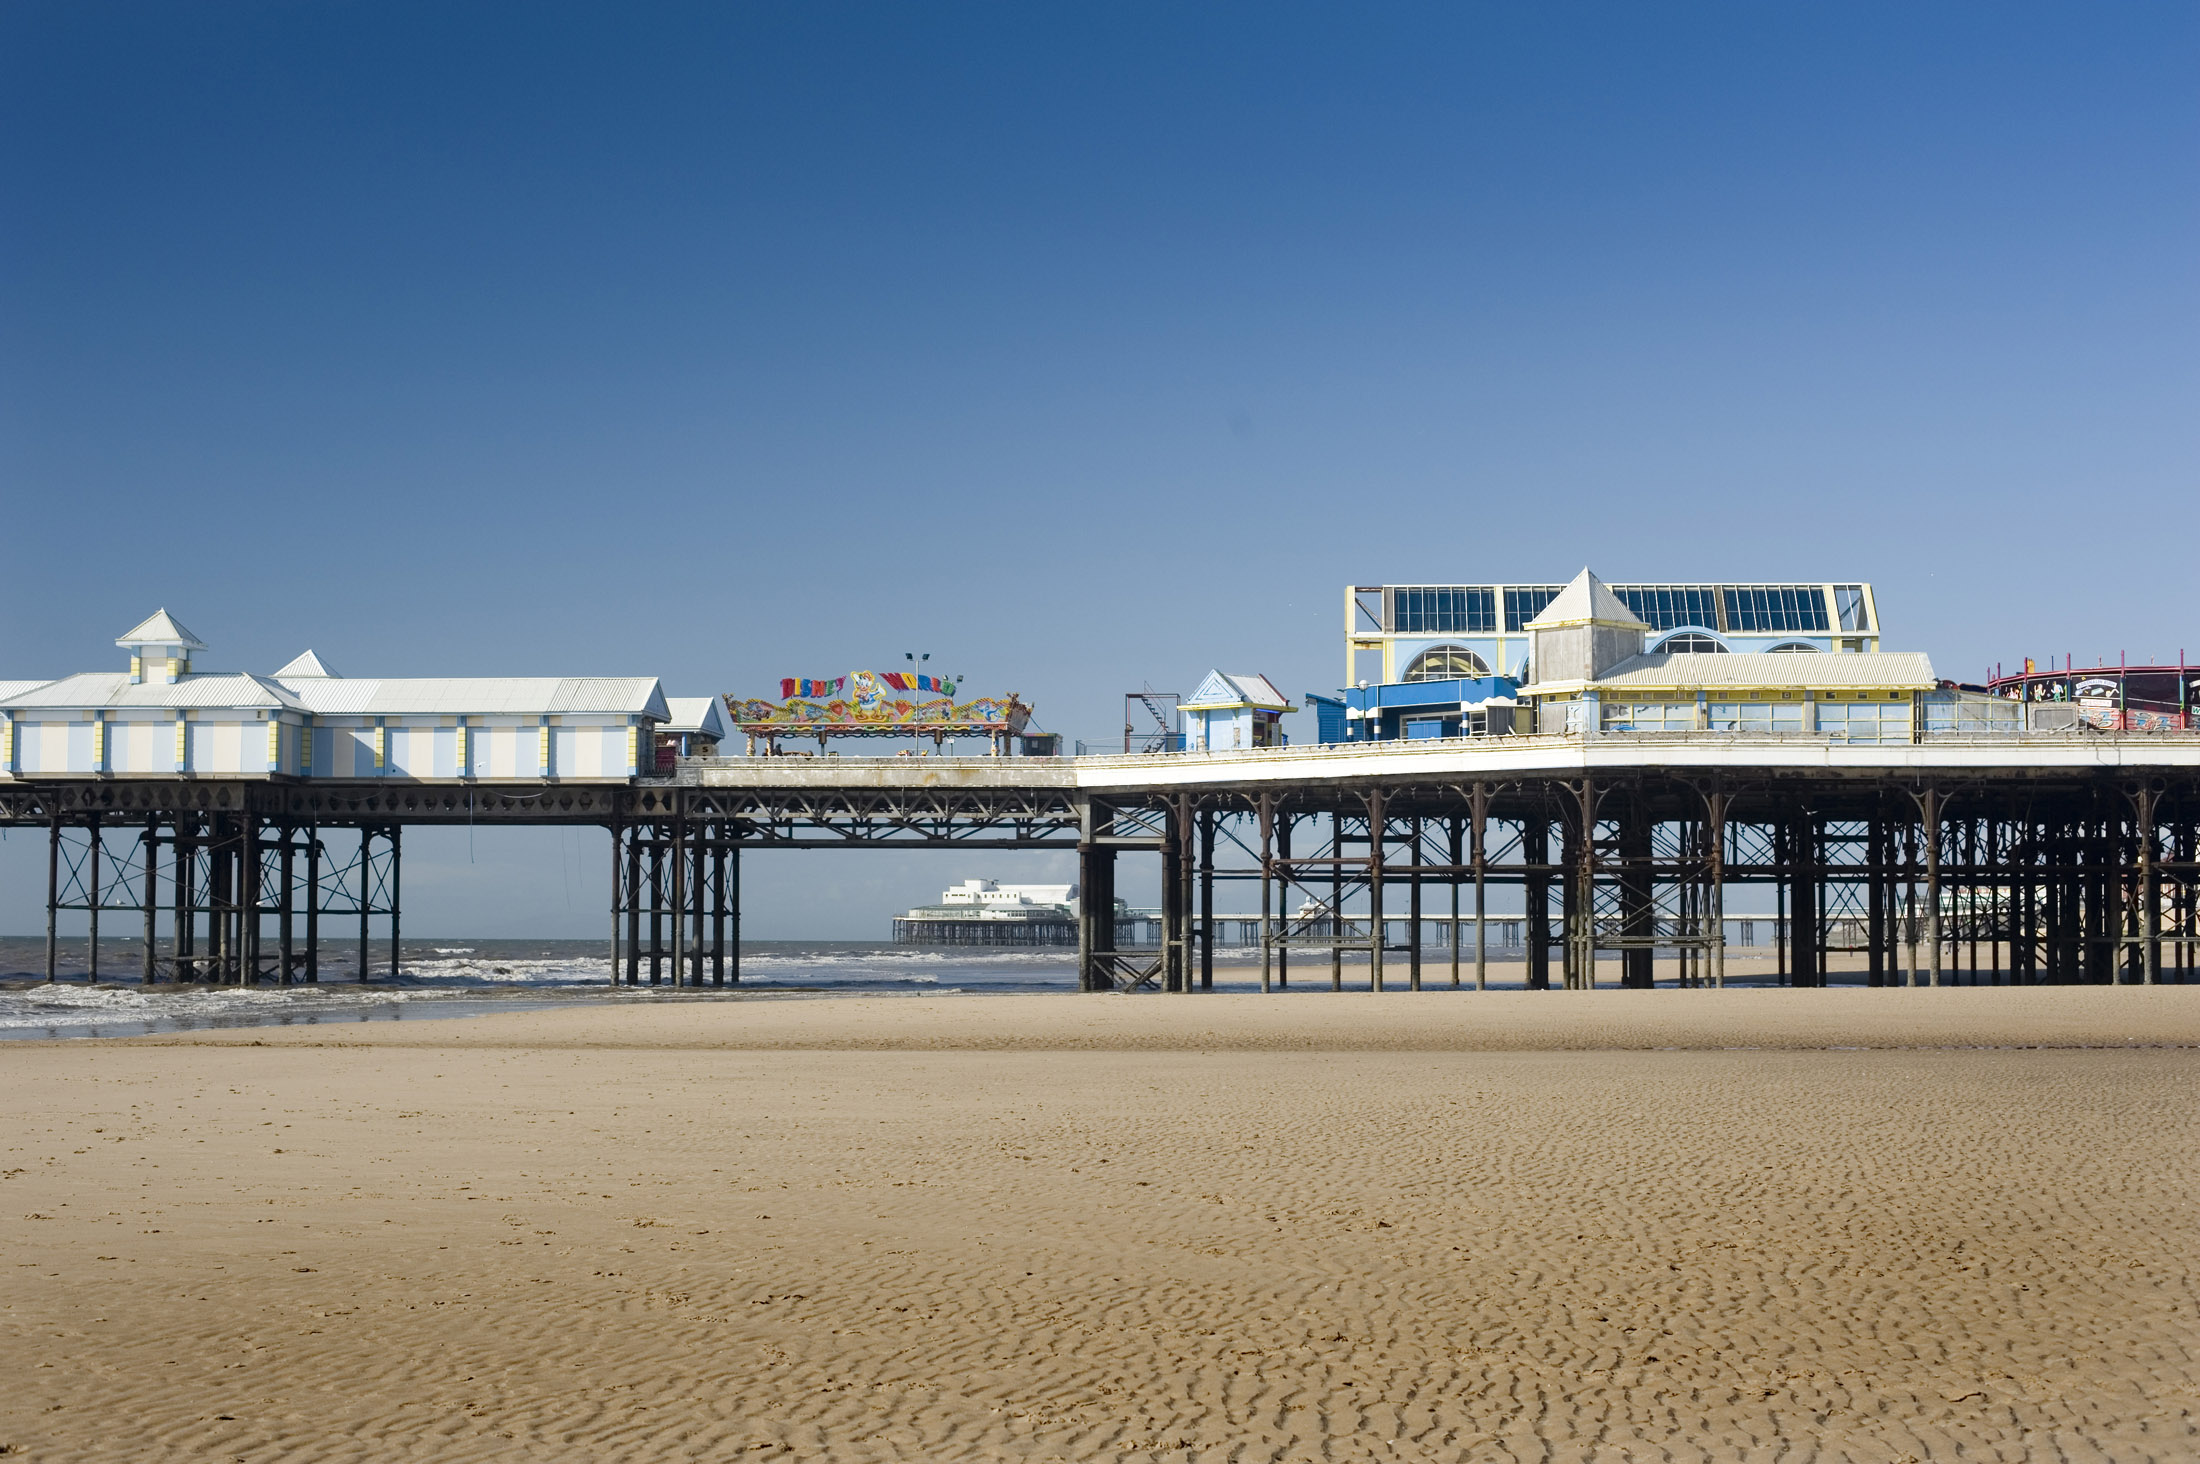 a view of blackpools central pier, the north pier can be seen in the distance